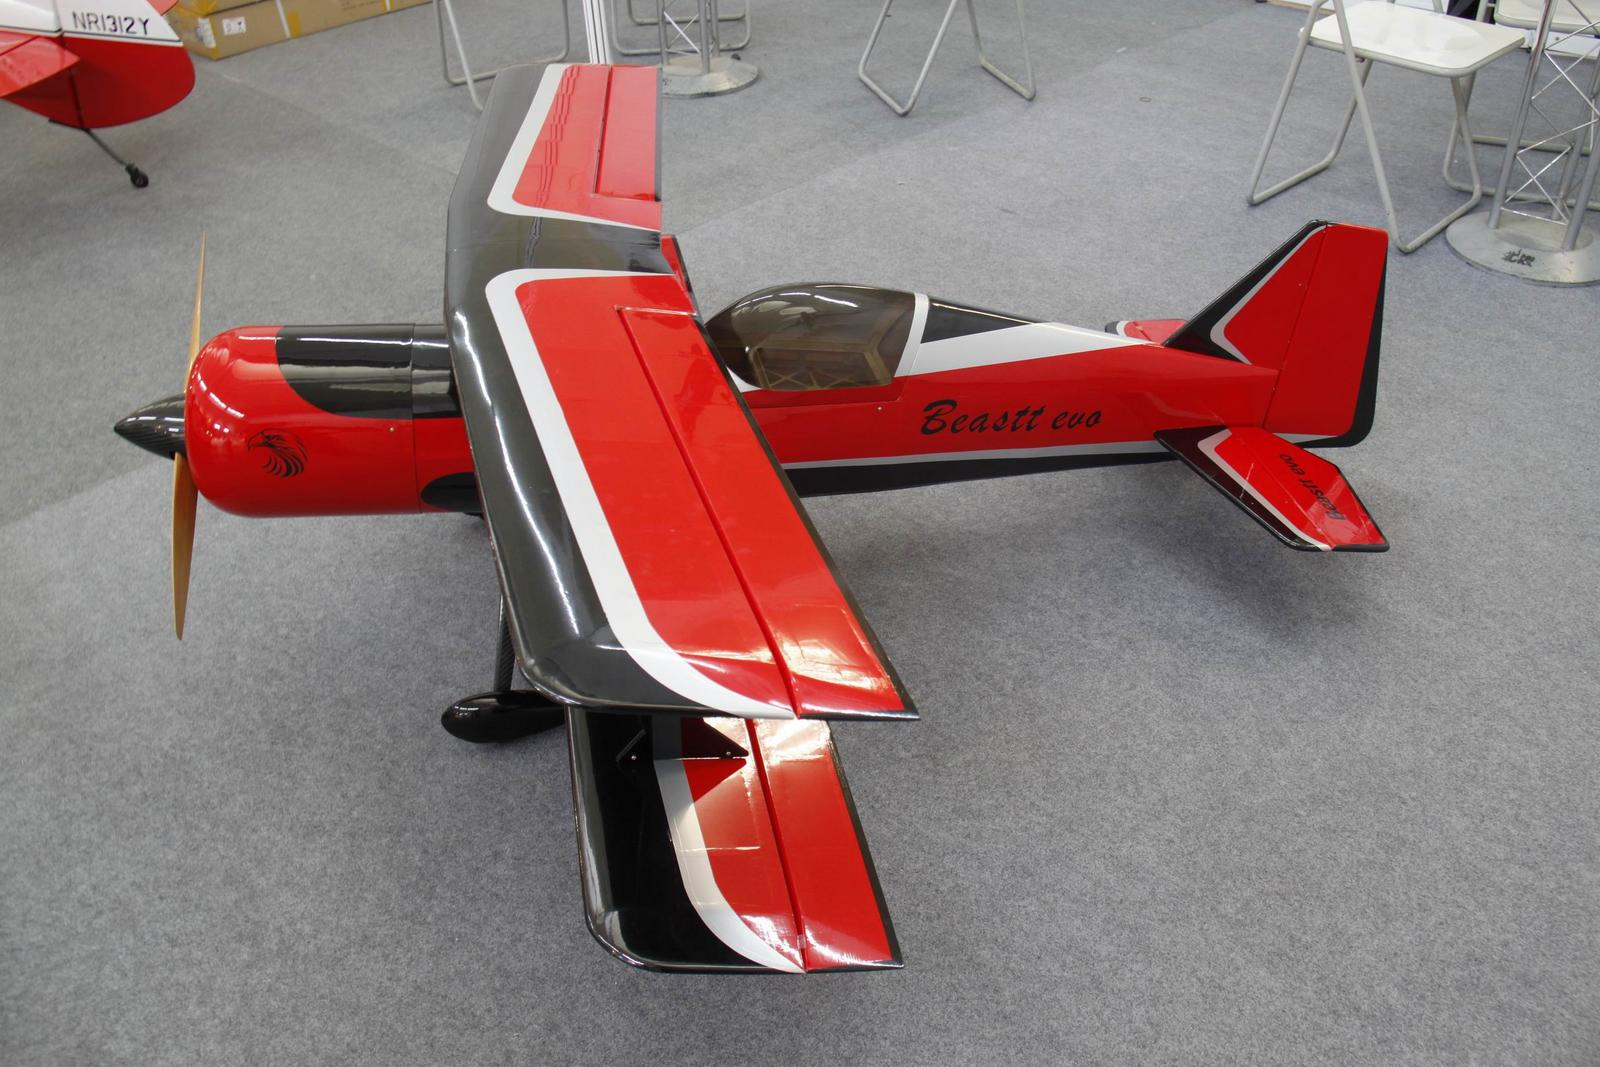 This is our new plane beast 50cc from Rita yu,if want to know details pls. contact me.